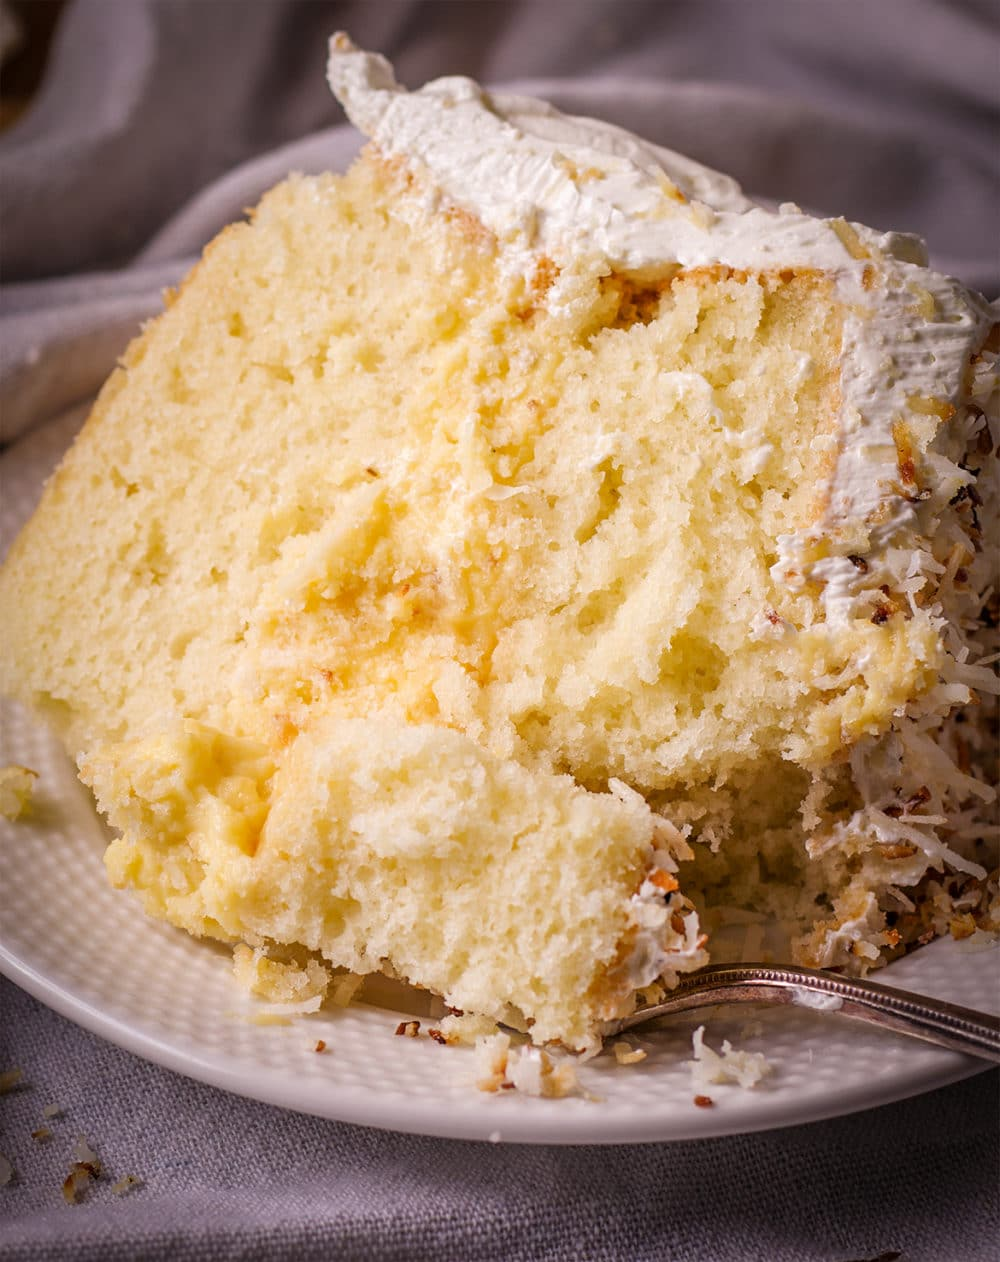 A slice of coconut cream cake on a plate, ready to eat.